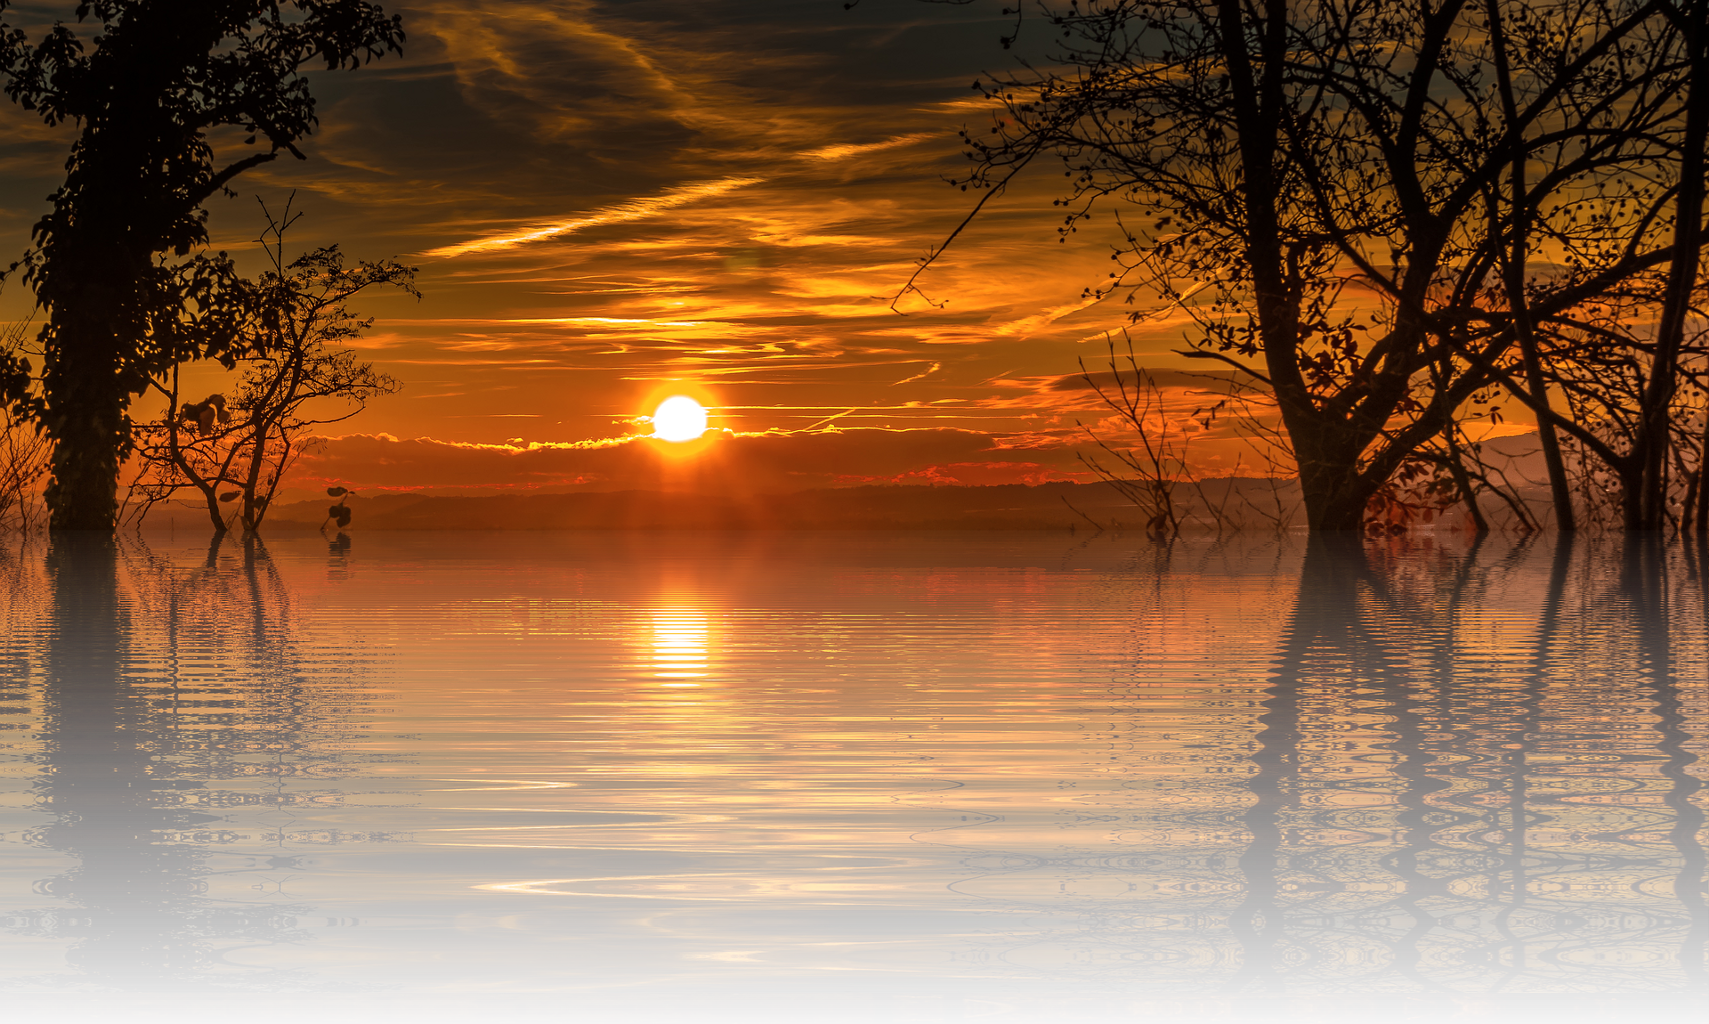 Sunset background png. Sihlouette nature water reflection